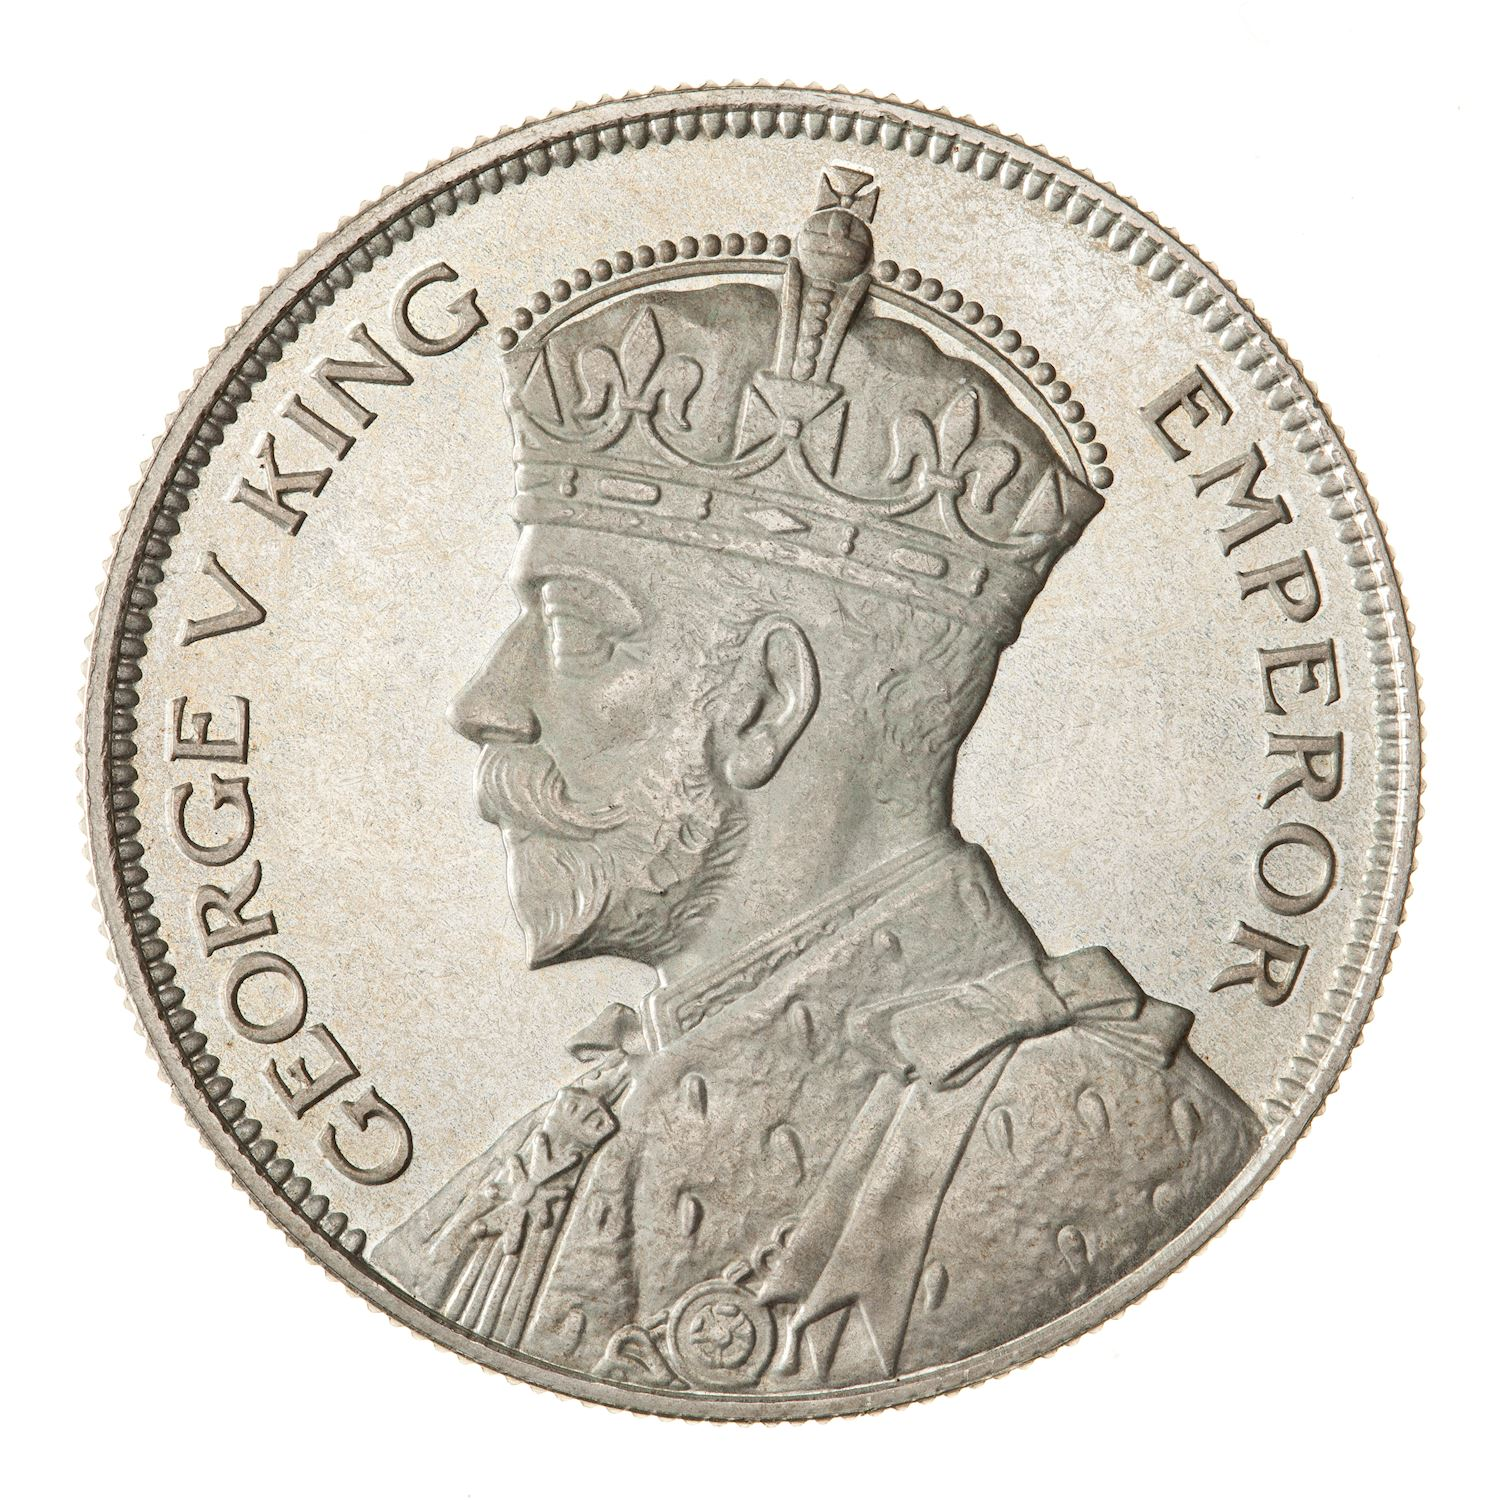 Half Crown: Photo Proof Coin - 1/2 Crown, New Zealand, 1933